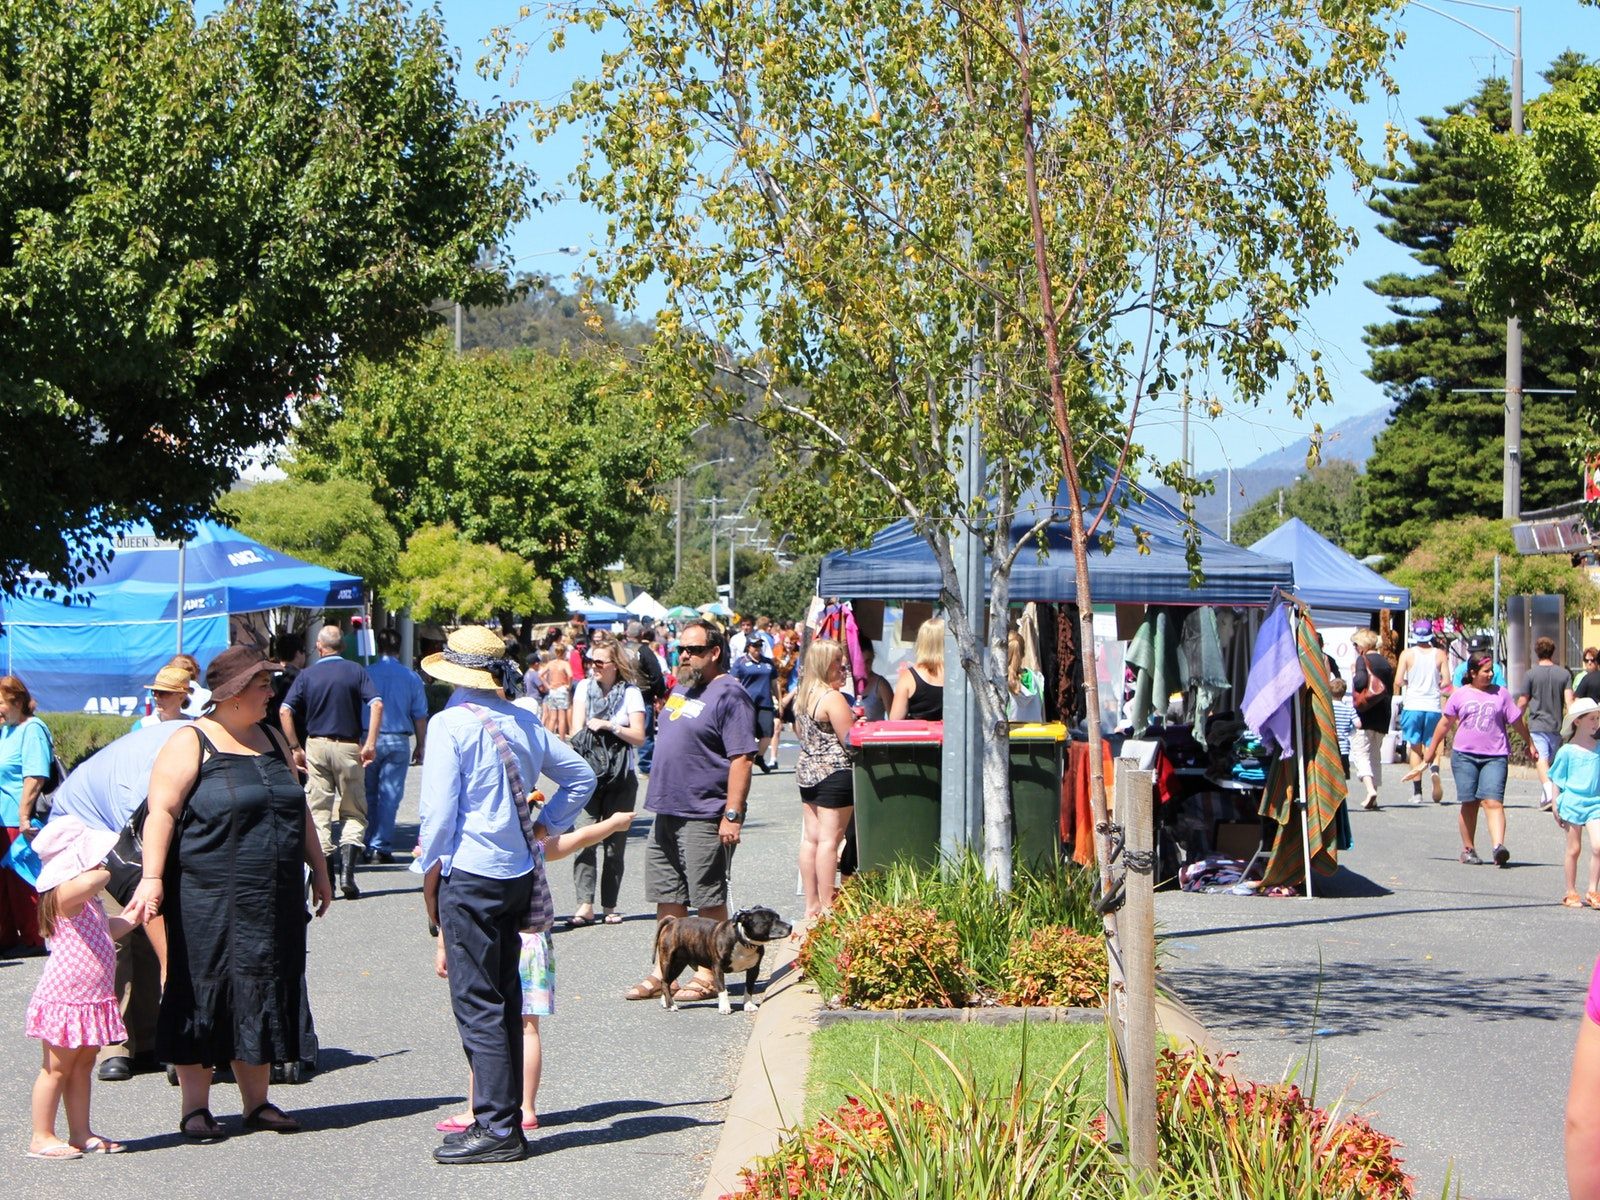 Myrtleford Bush Market